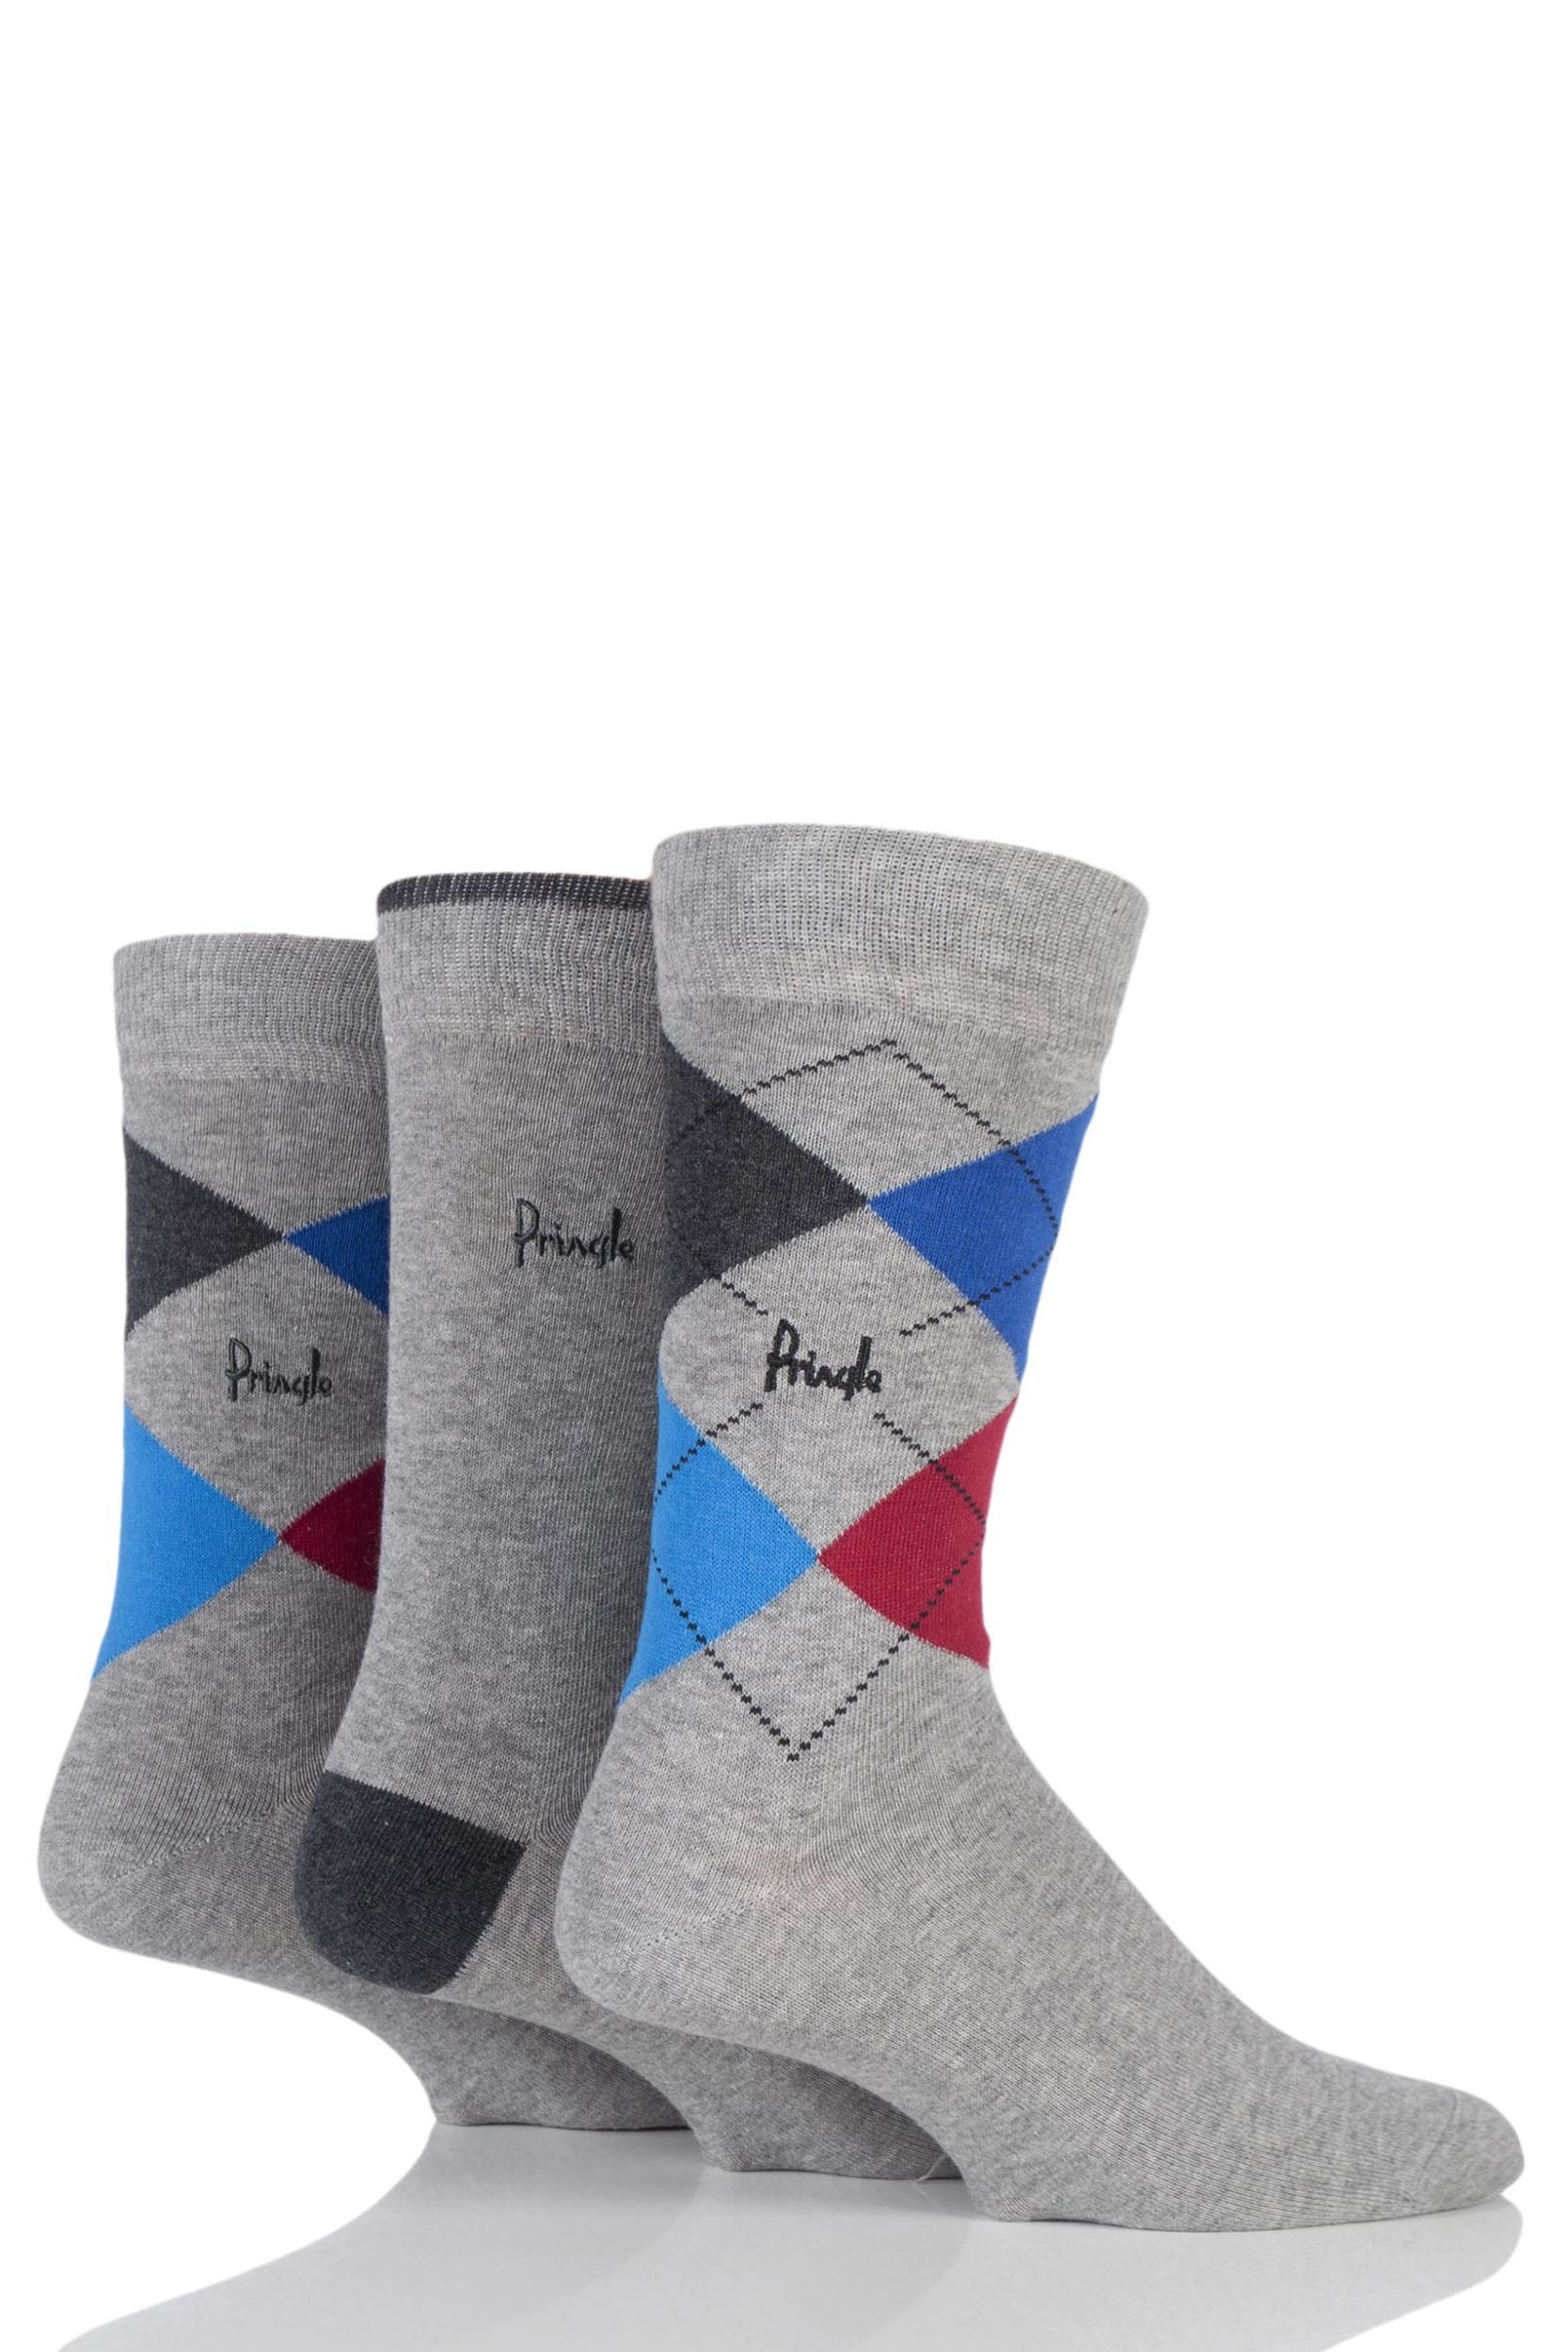 Patterned socks Elegant Mens 3 Pair Pringle New Waverley Argyle Patterned & Plain Of Superb 48 Images Patterned socks